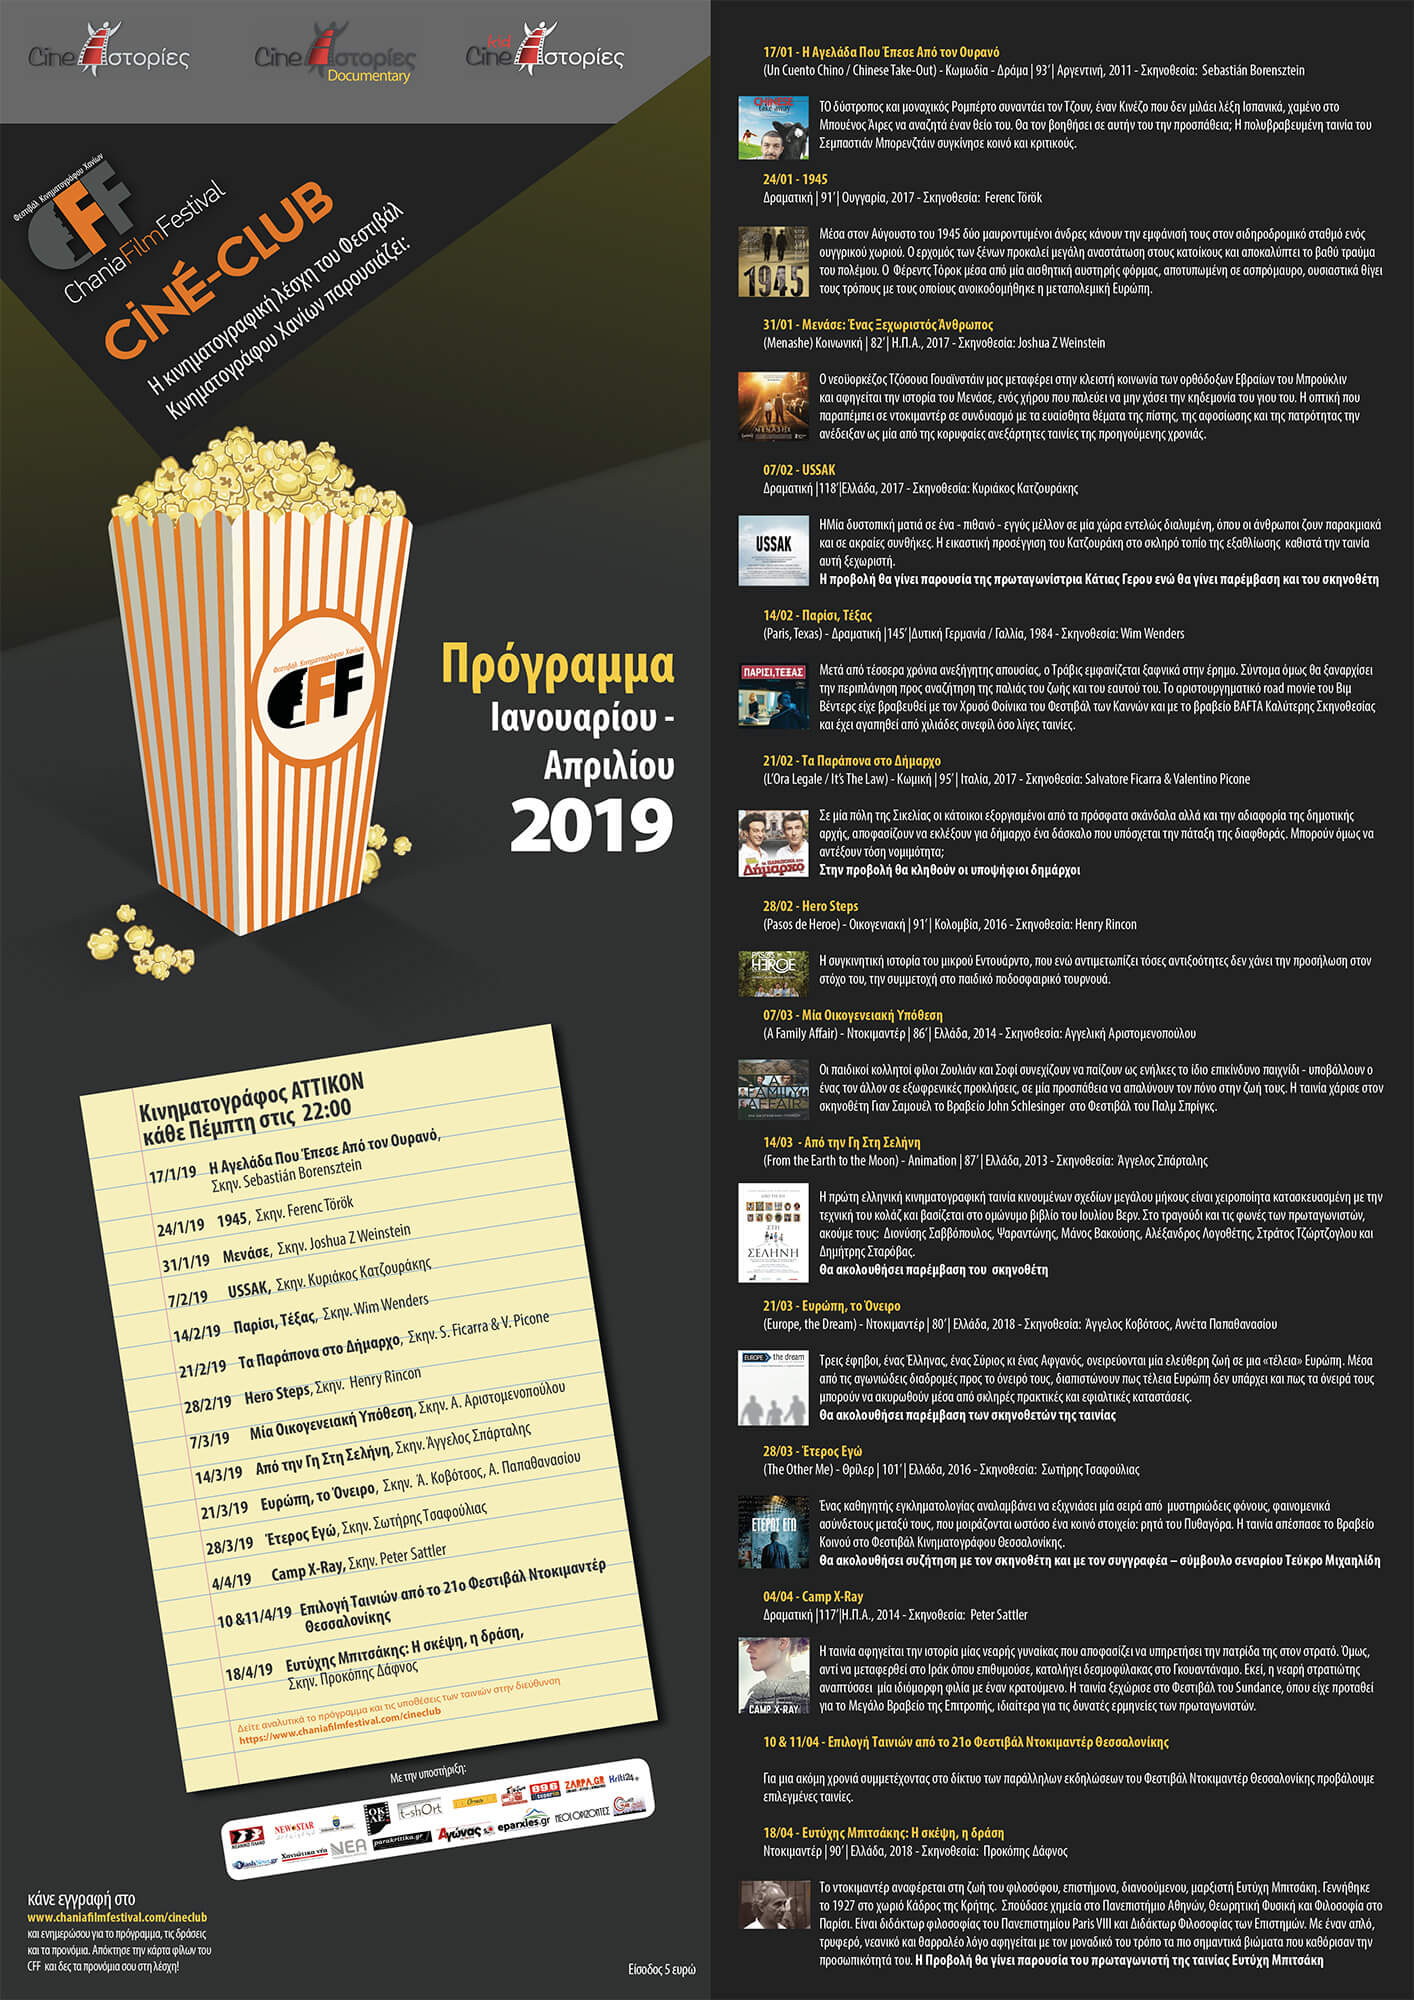 Cineclub 2019 - Chania Film Festival